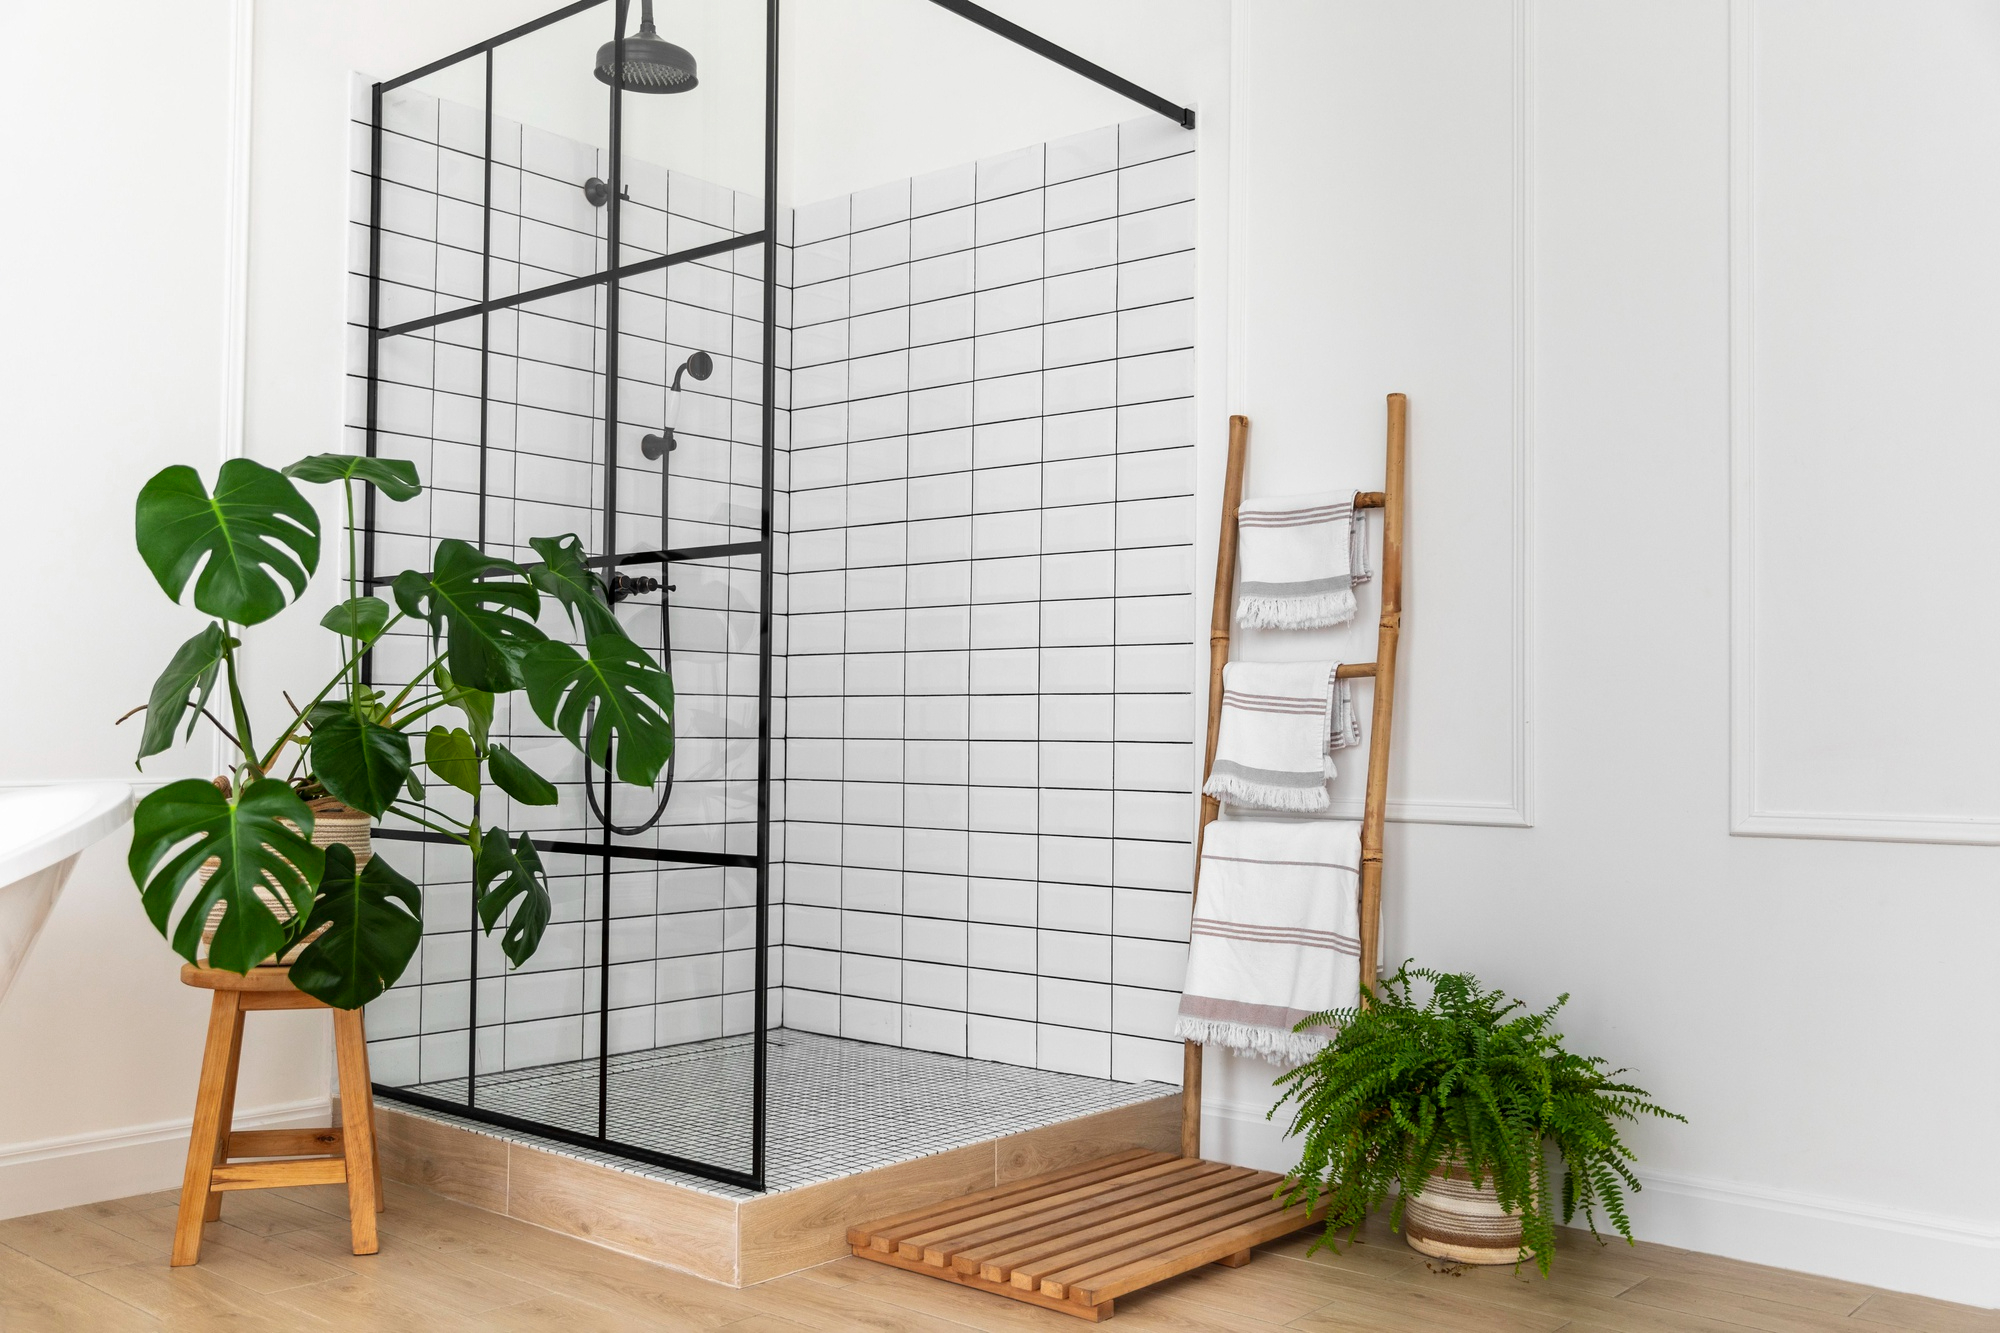 What Should You Not Do When Remodelling a Bathroom? | JC Premier Melbourne